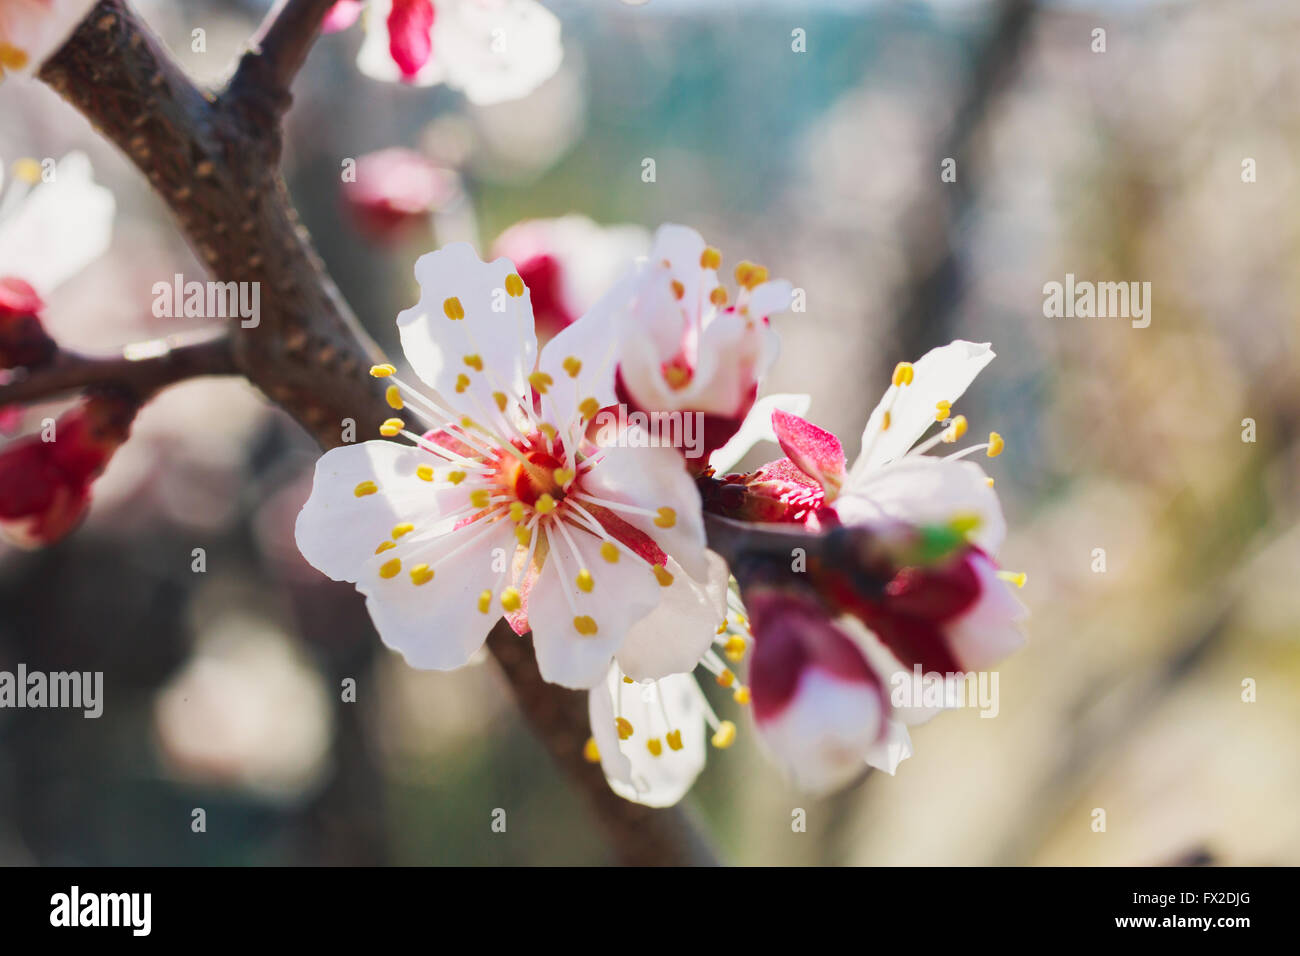 Flower Header Stock Photos Flower Header Stock Images Page 2 Alamy